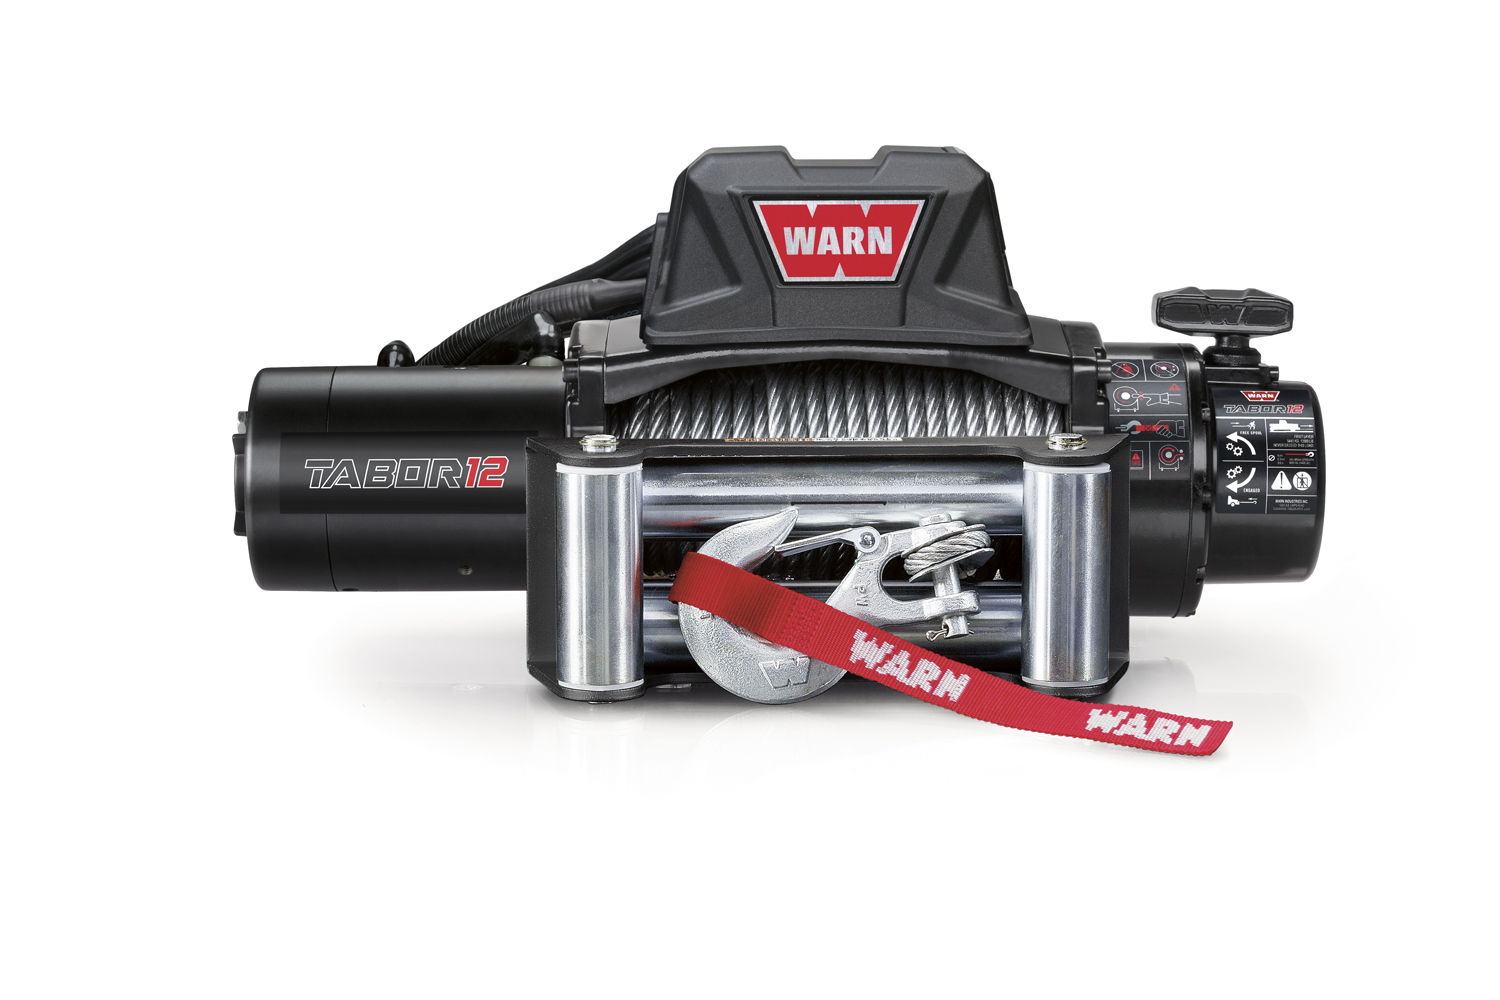 hight resolution of warn tabor 12k winch 97015 jm 02050 warn